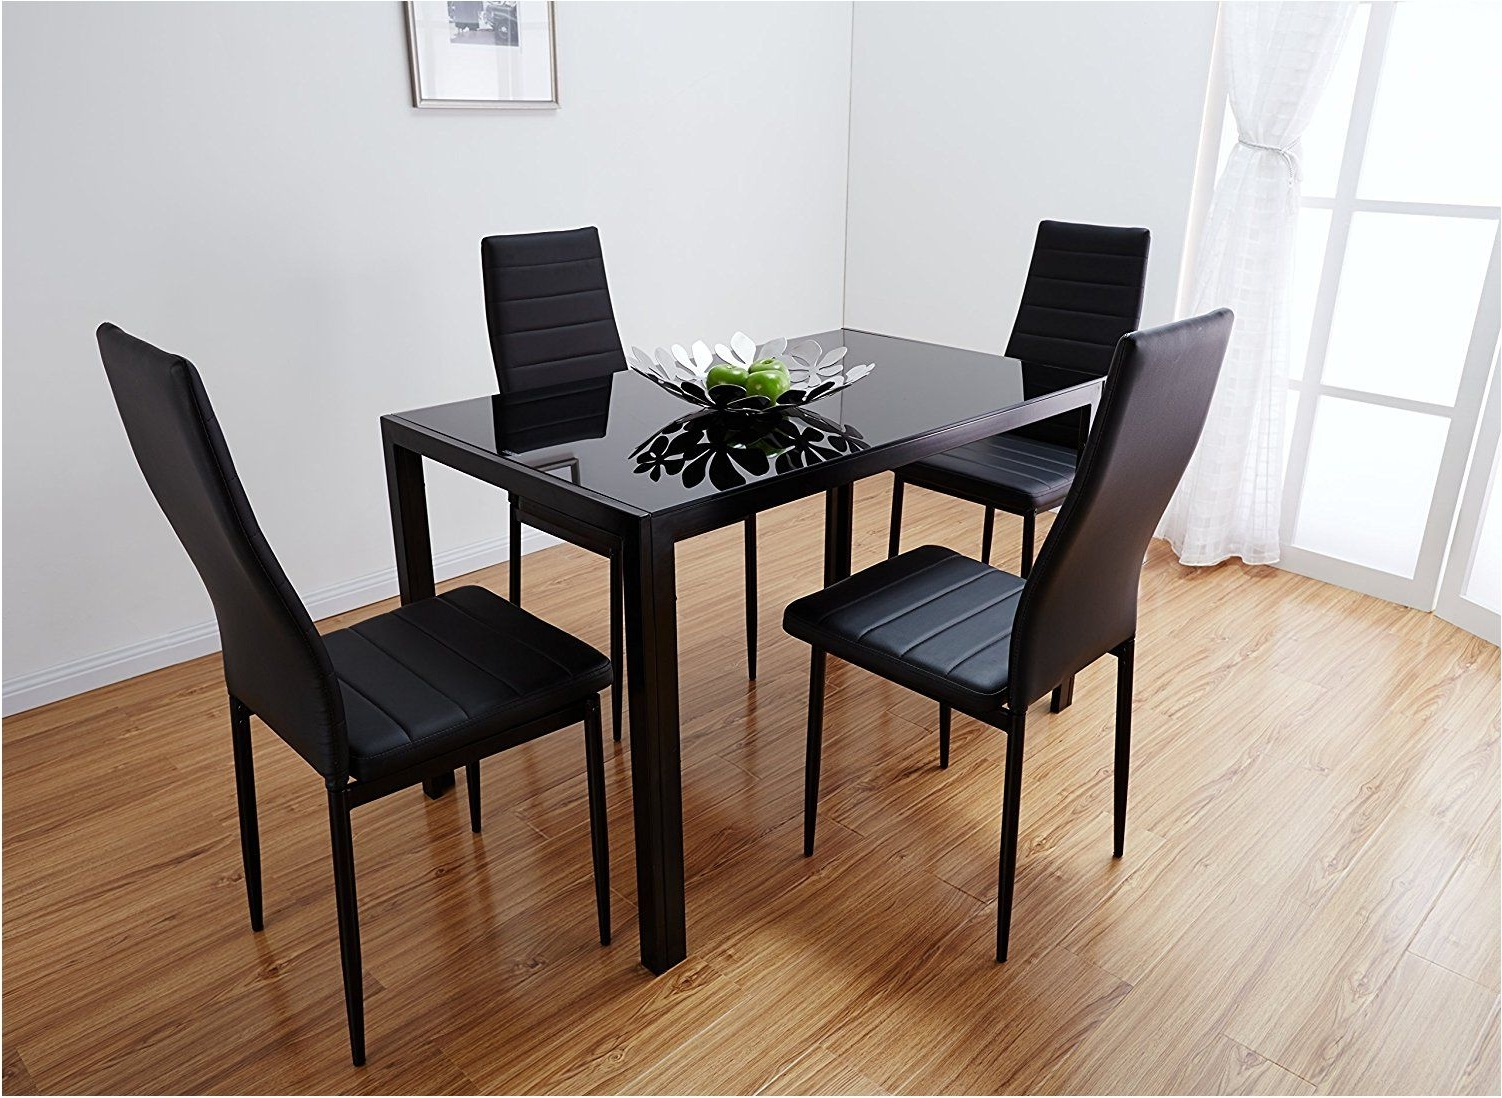 Widely Used Cheap Glass Dining Tables And 4 Chairs With Breathtaking Black Glass Dining Table Set With 4 Faux Leather Chairs (View 24 of 25)